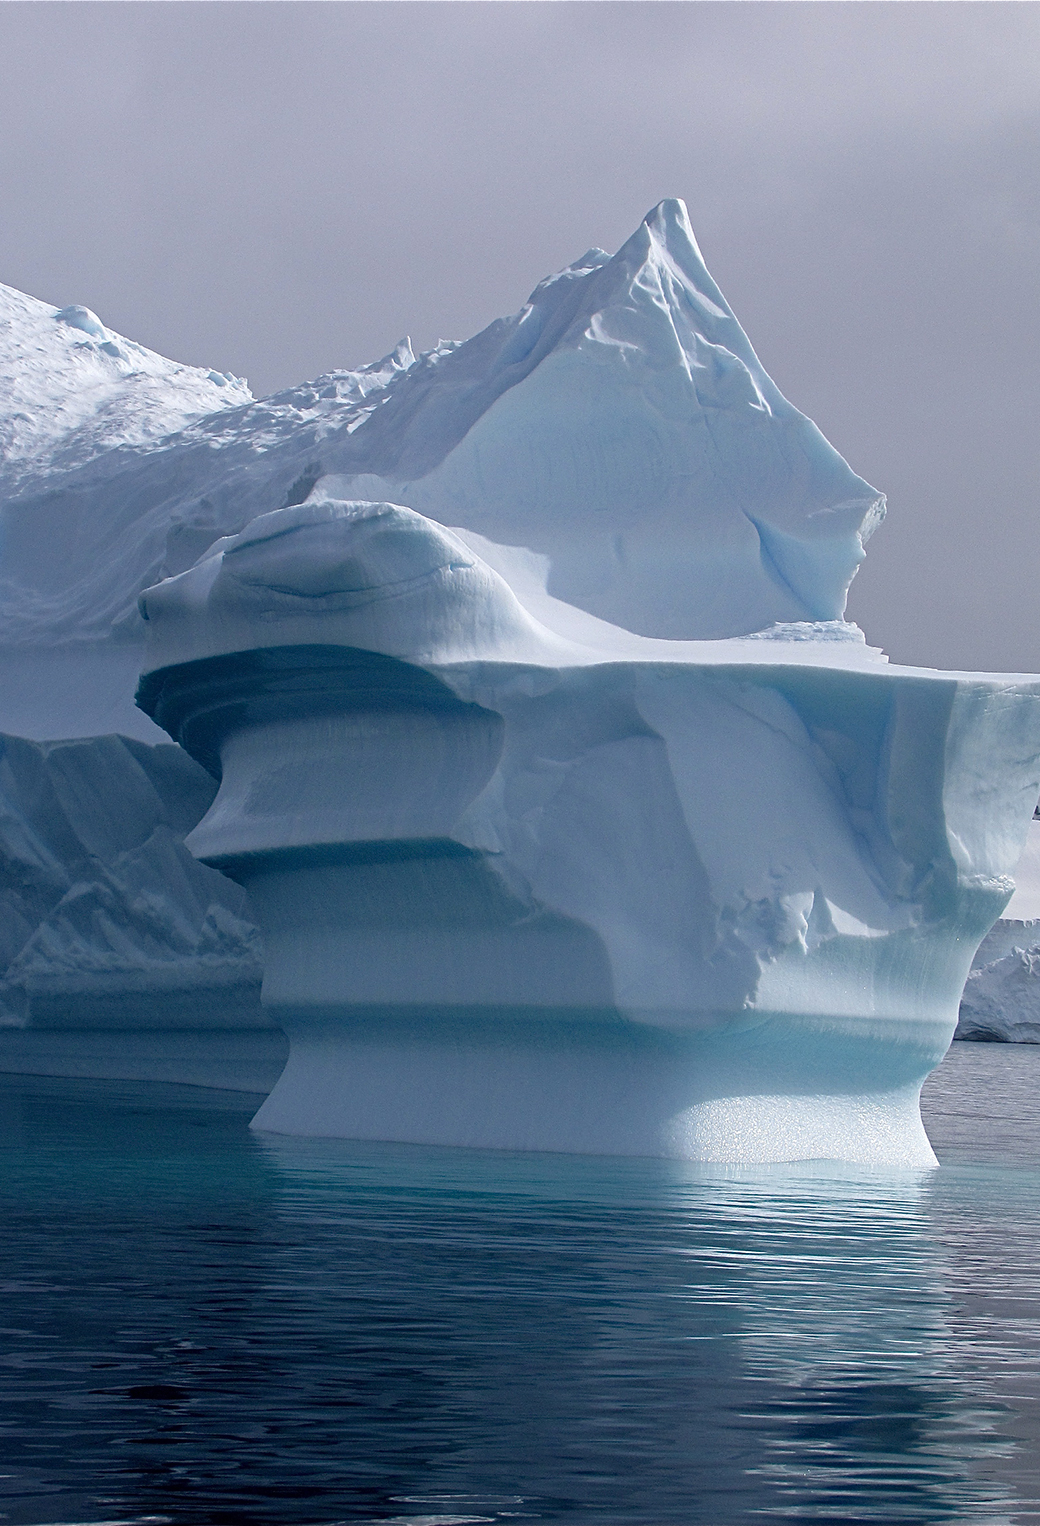 Antartic IceBerg 3Wallpapers iPhone parallax Antartic IceBerg